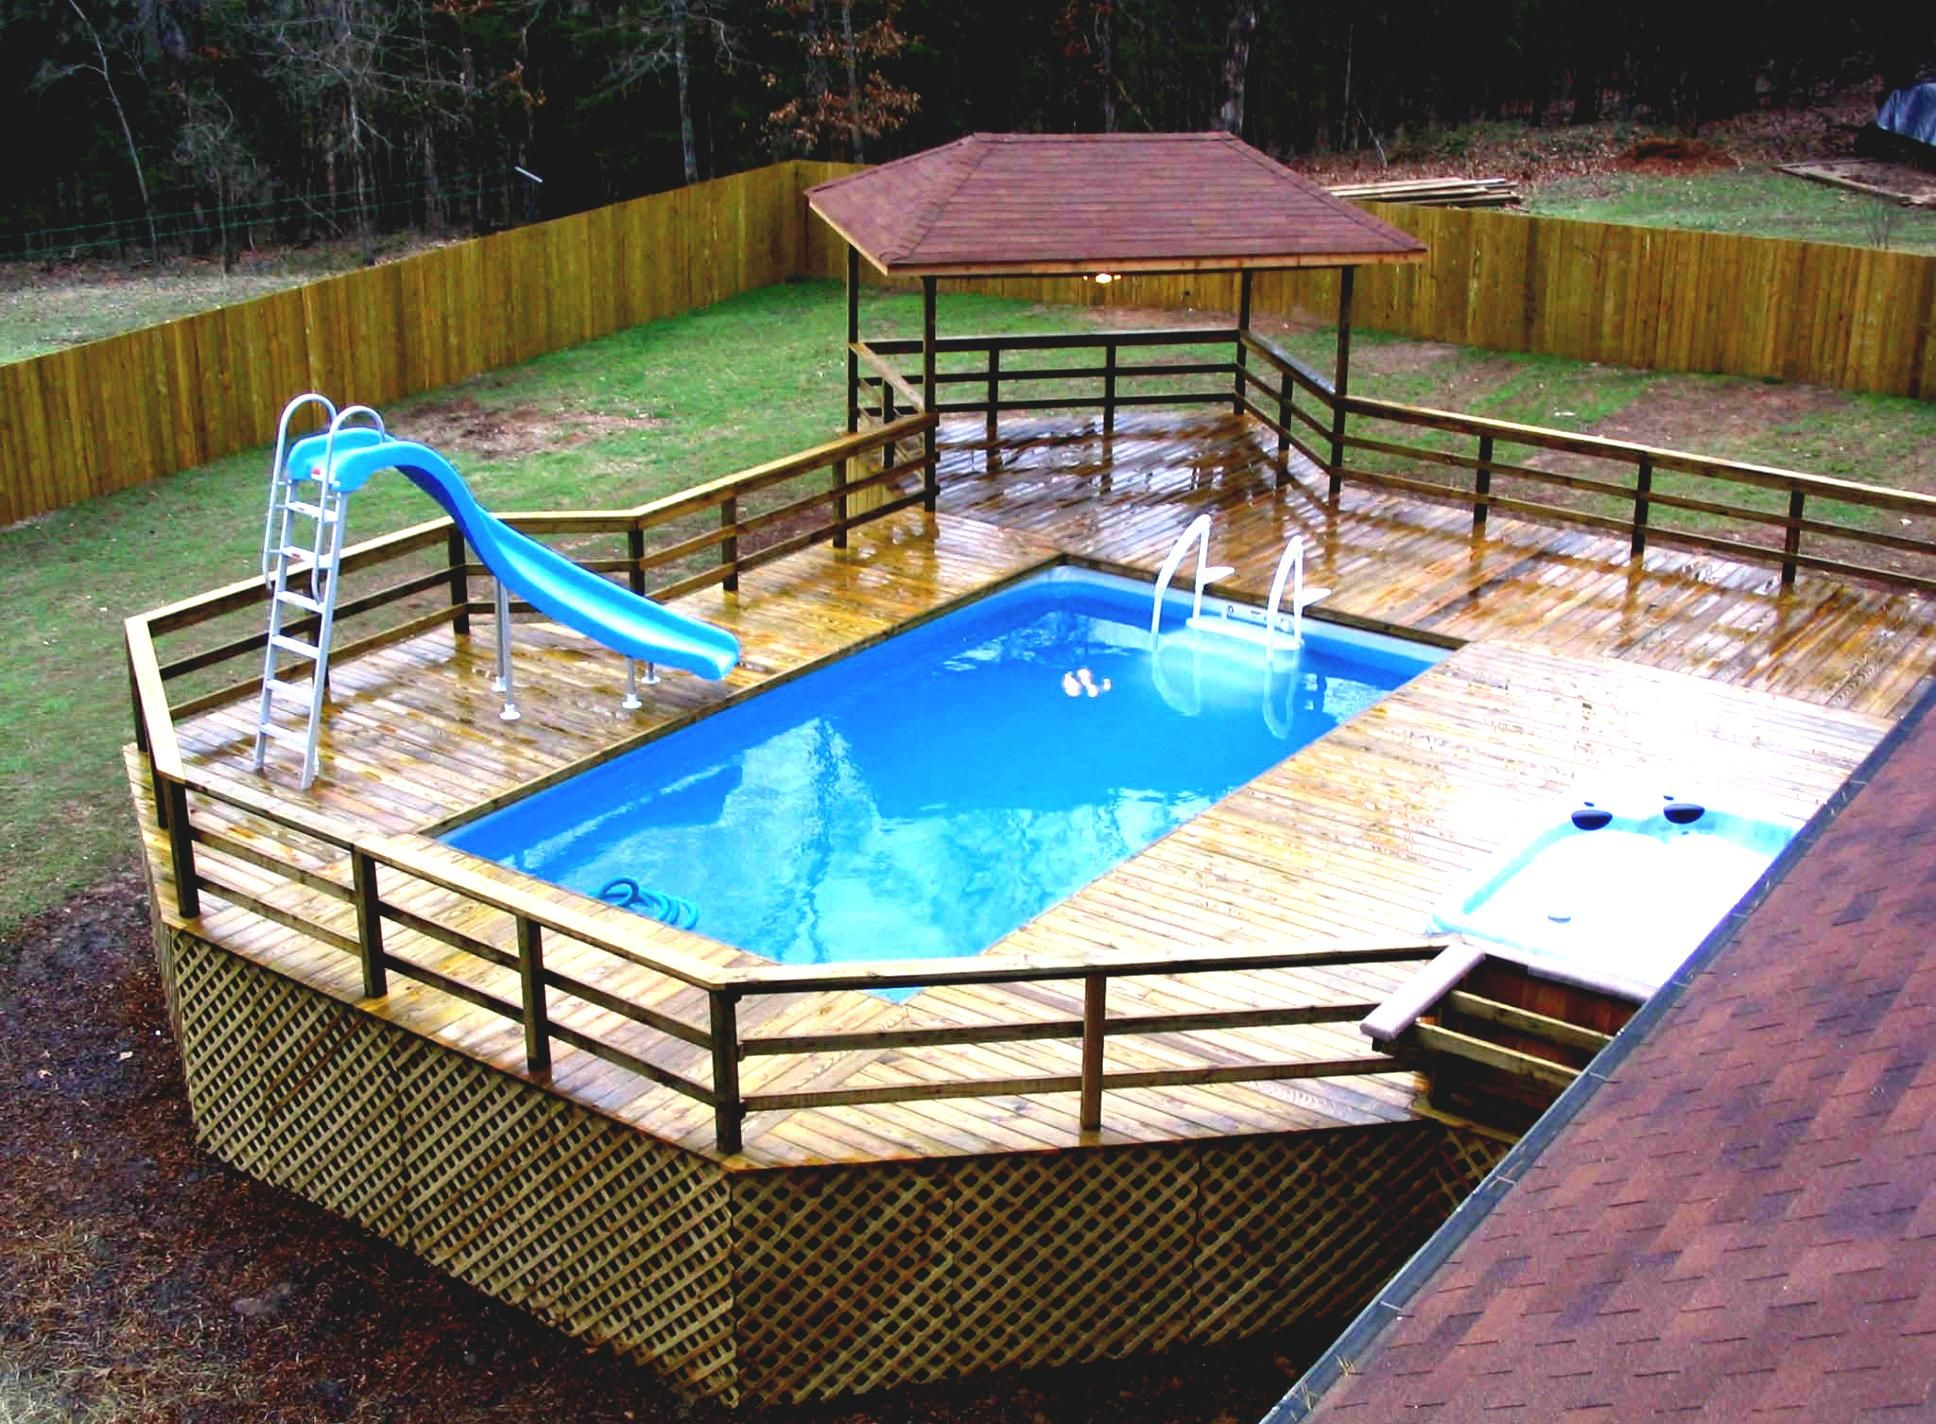 Intex above ground pool landscaping ideas pdf backyard for Above ground pond ideas